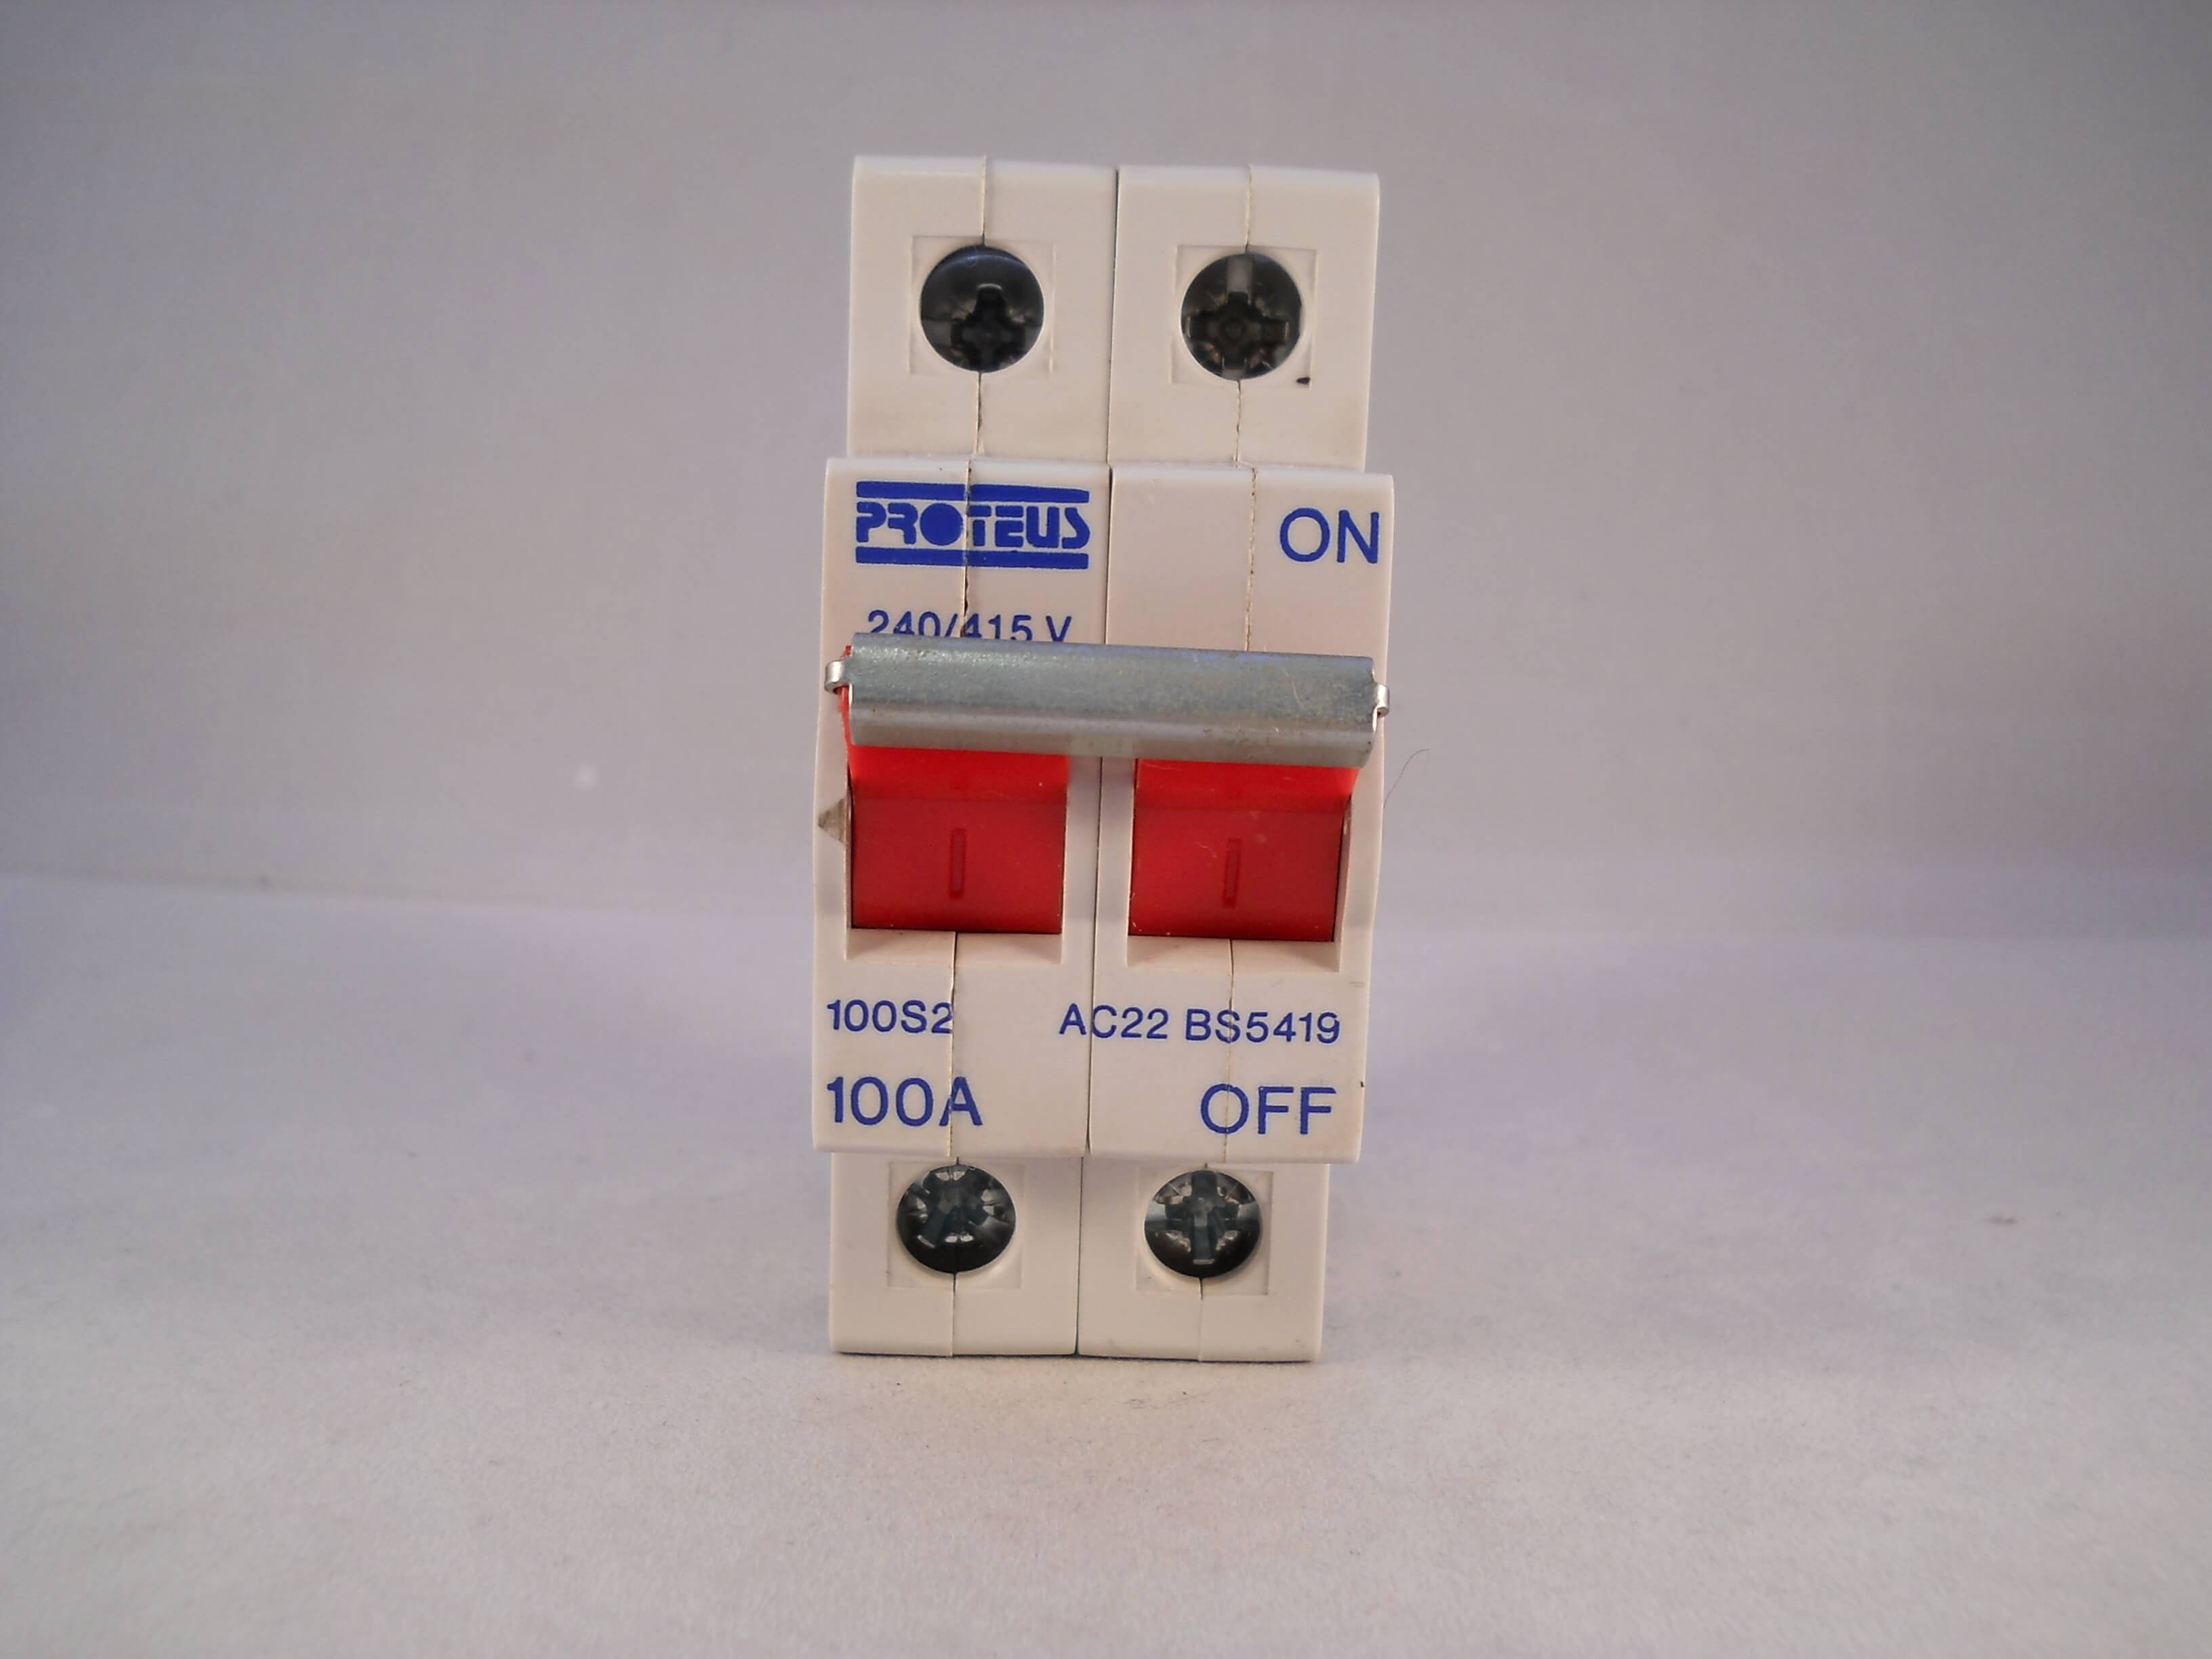 Proteus 100 Amp Main Switch Disconnector 100a Double Pole Isolator 100S2 for sale online